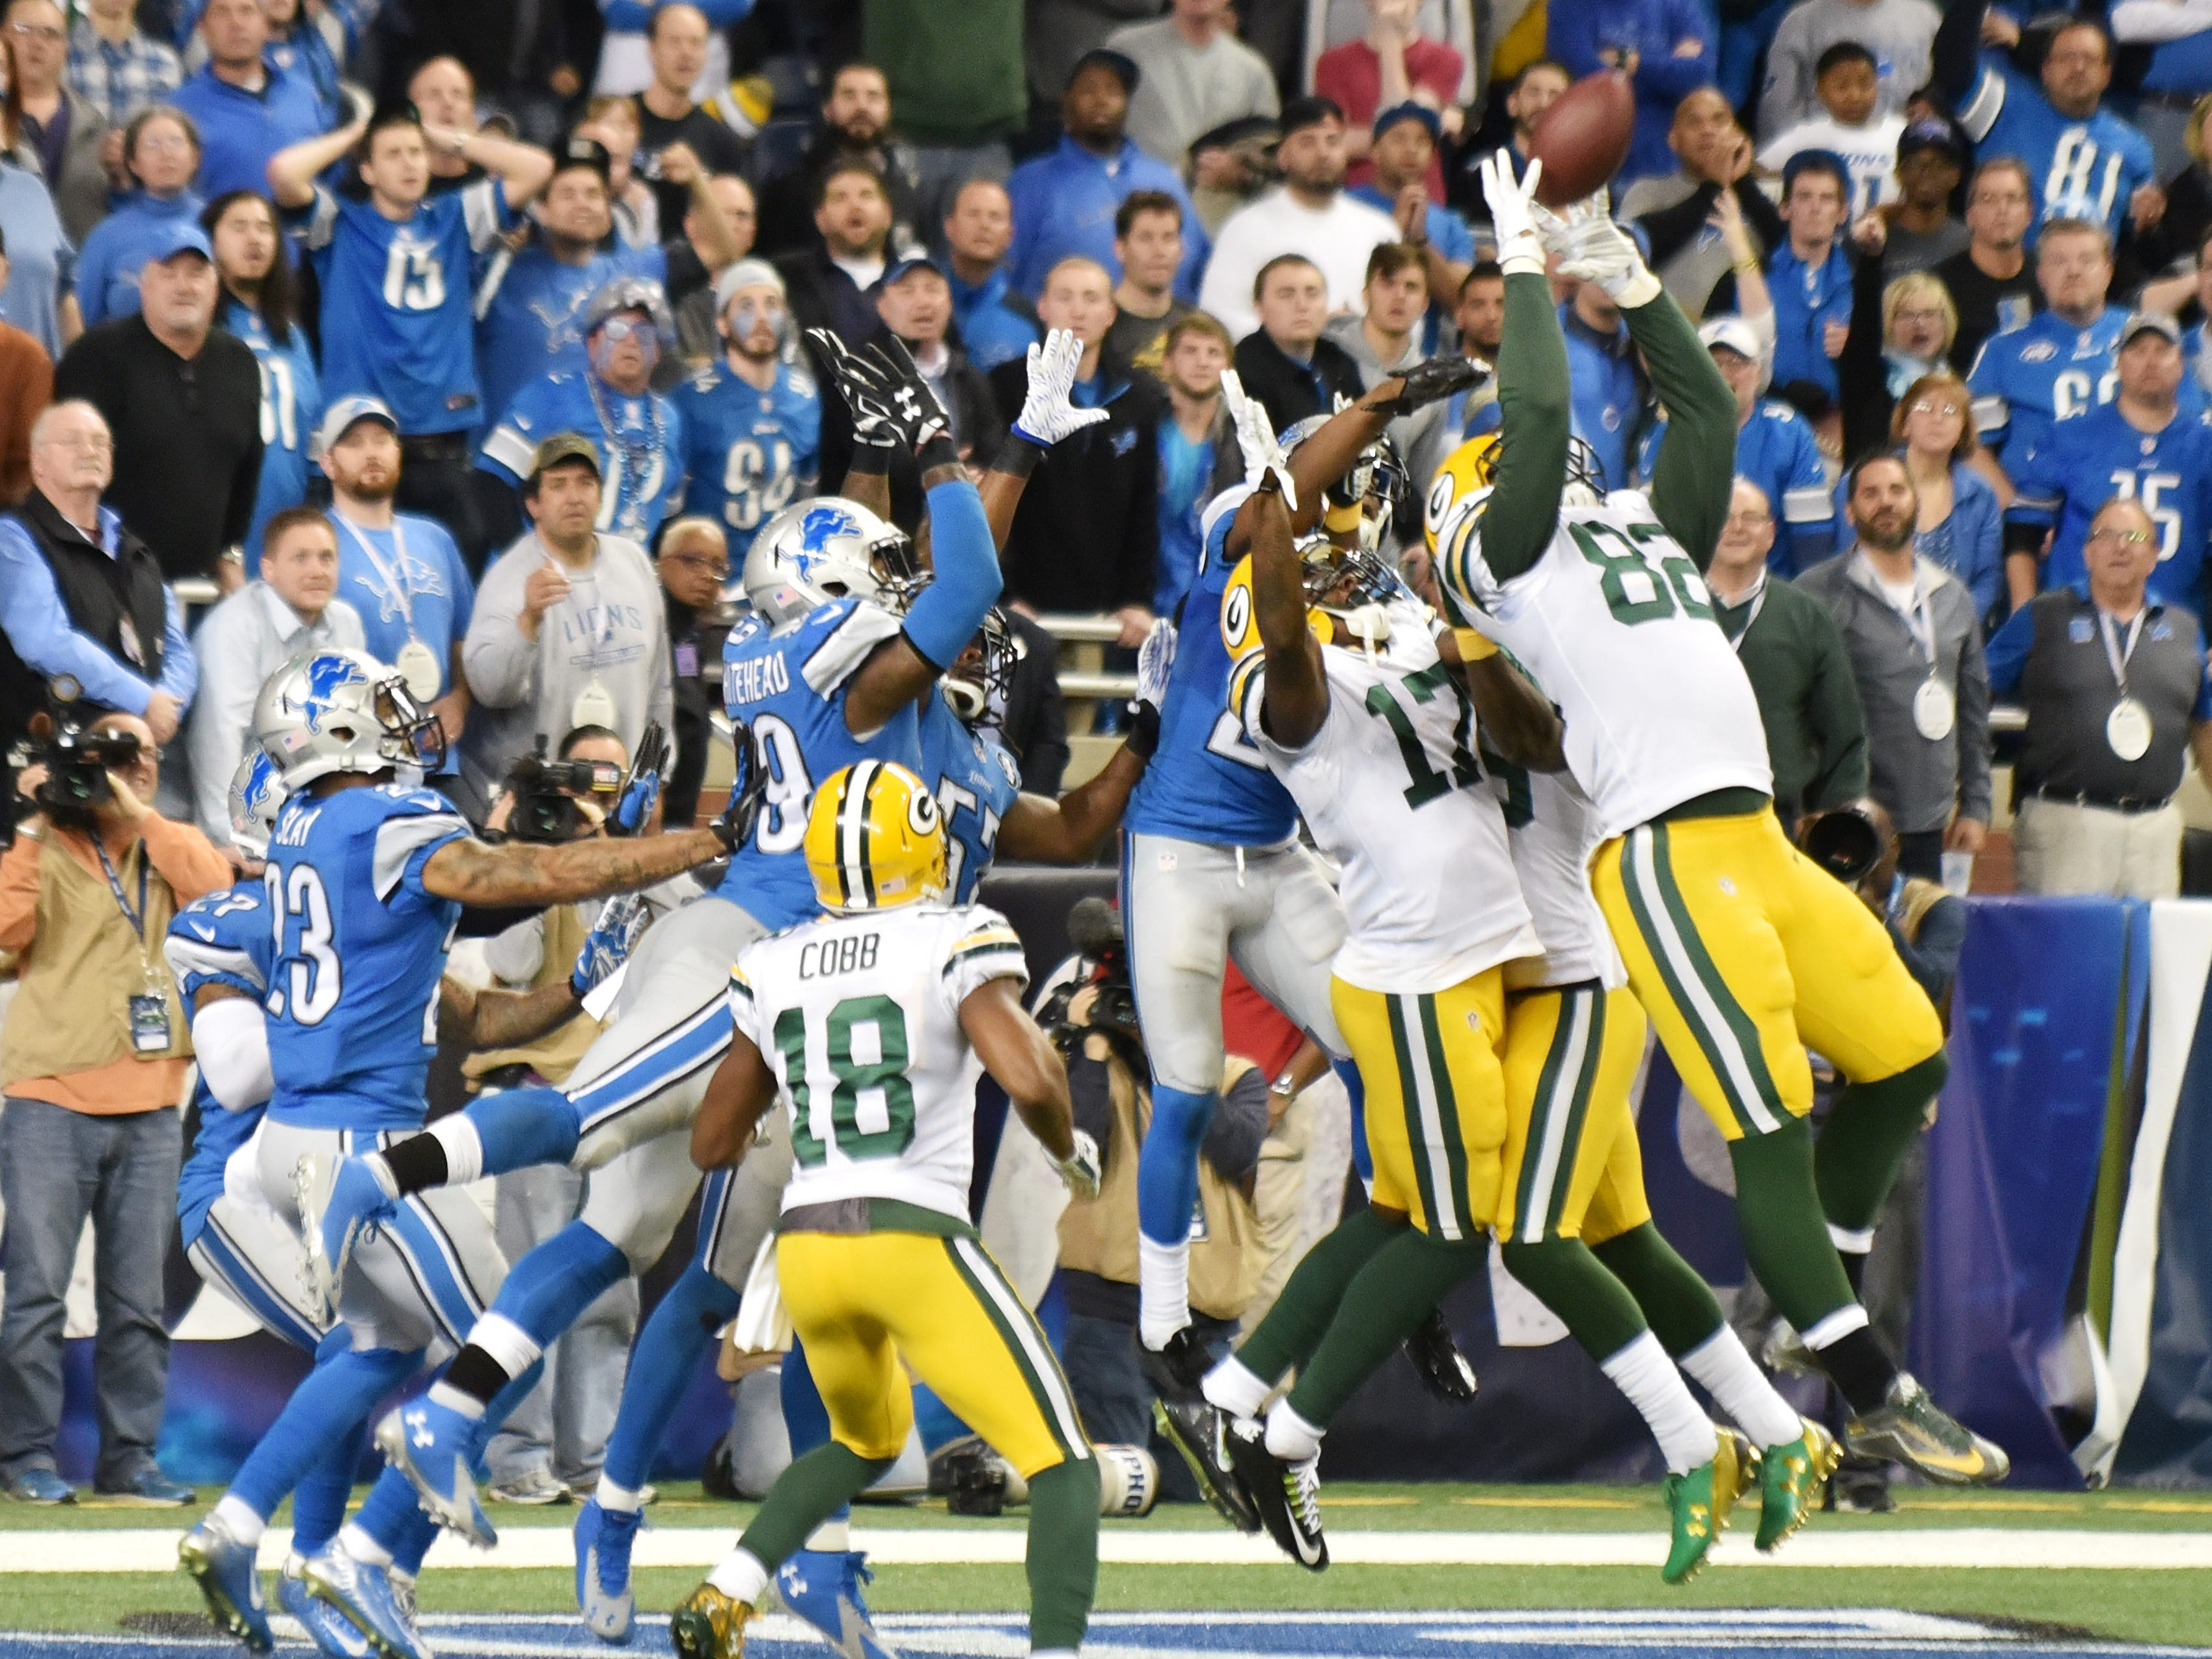 """LIONS-PACKERS: Having met twice a season since the early 1930s, there is no longer-running rivalry in the NFL than this one -- even though it's been a bit one-sided over the years (the last three games, notwithstanding). One of the most-memorable games came in 2015, when Aaron Rodgers' Hail Mary as time expired one it. It was dubbed the """"Miracle in Motown."""""""